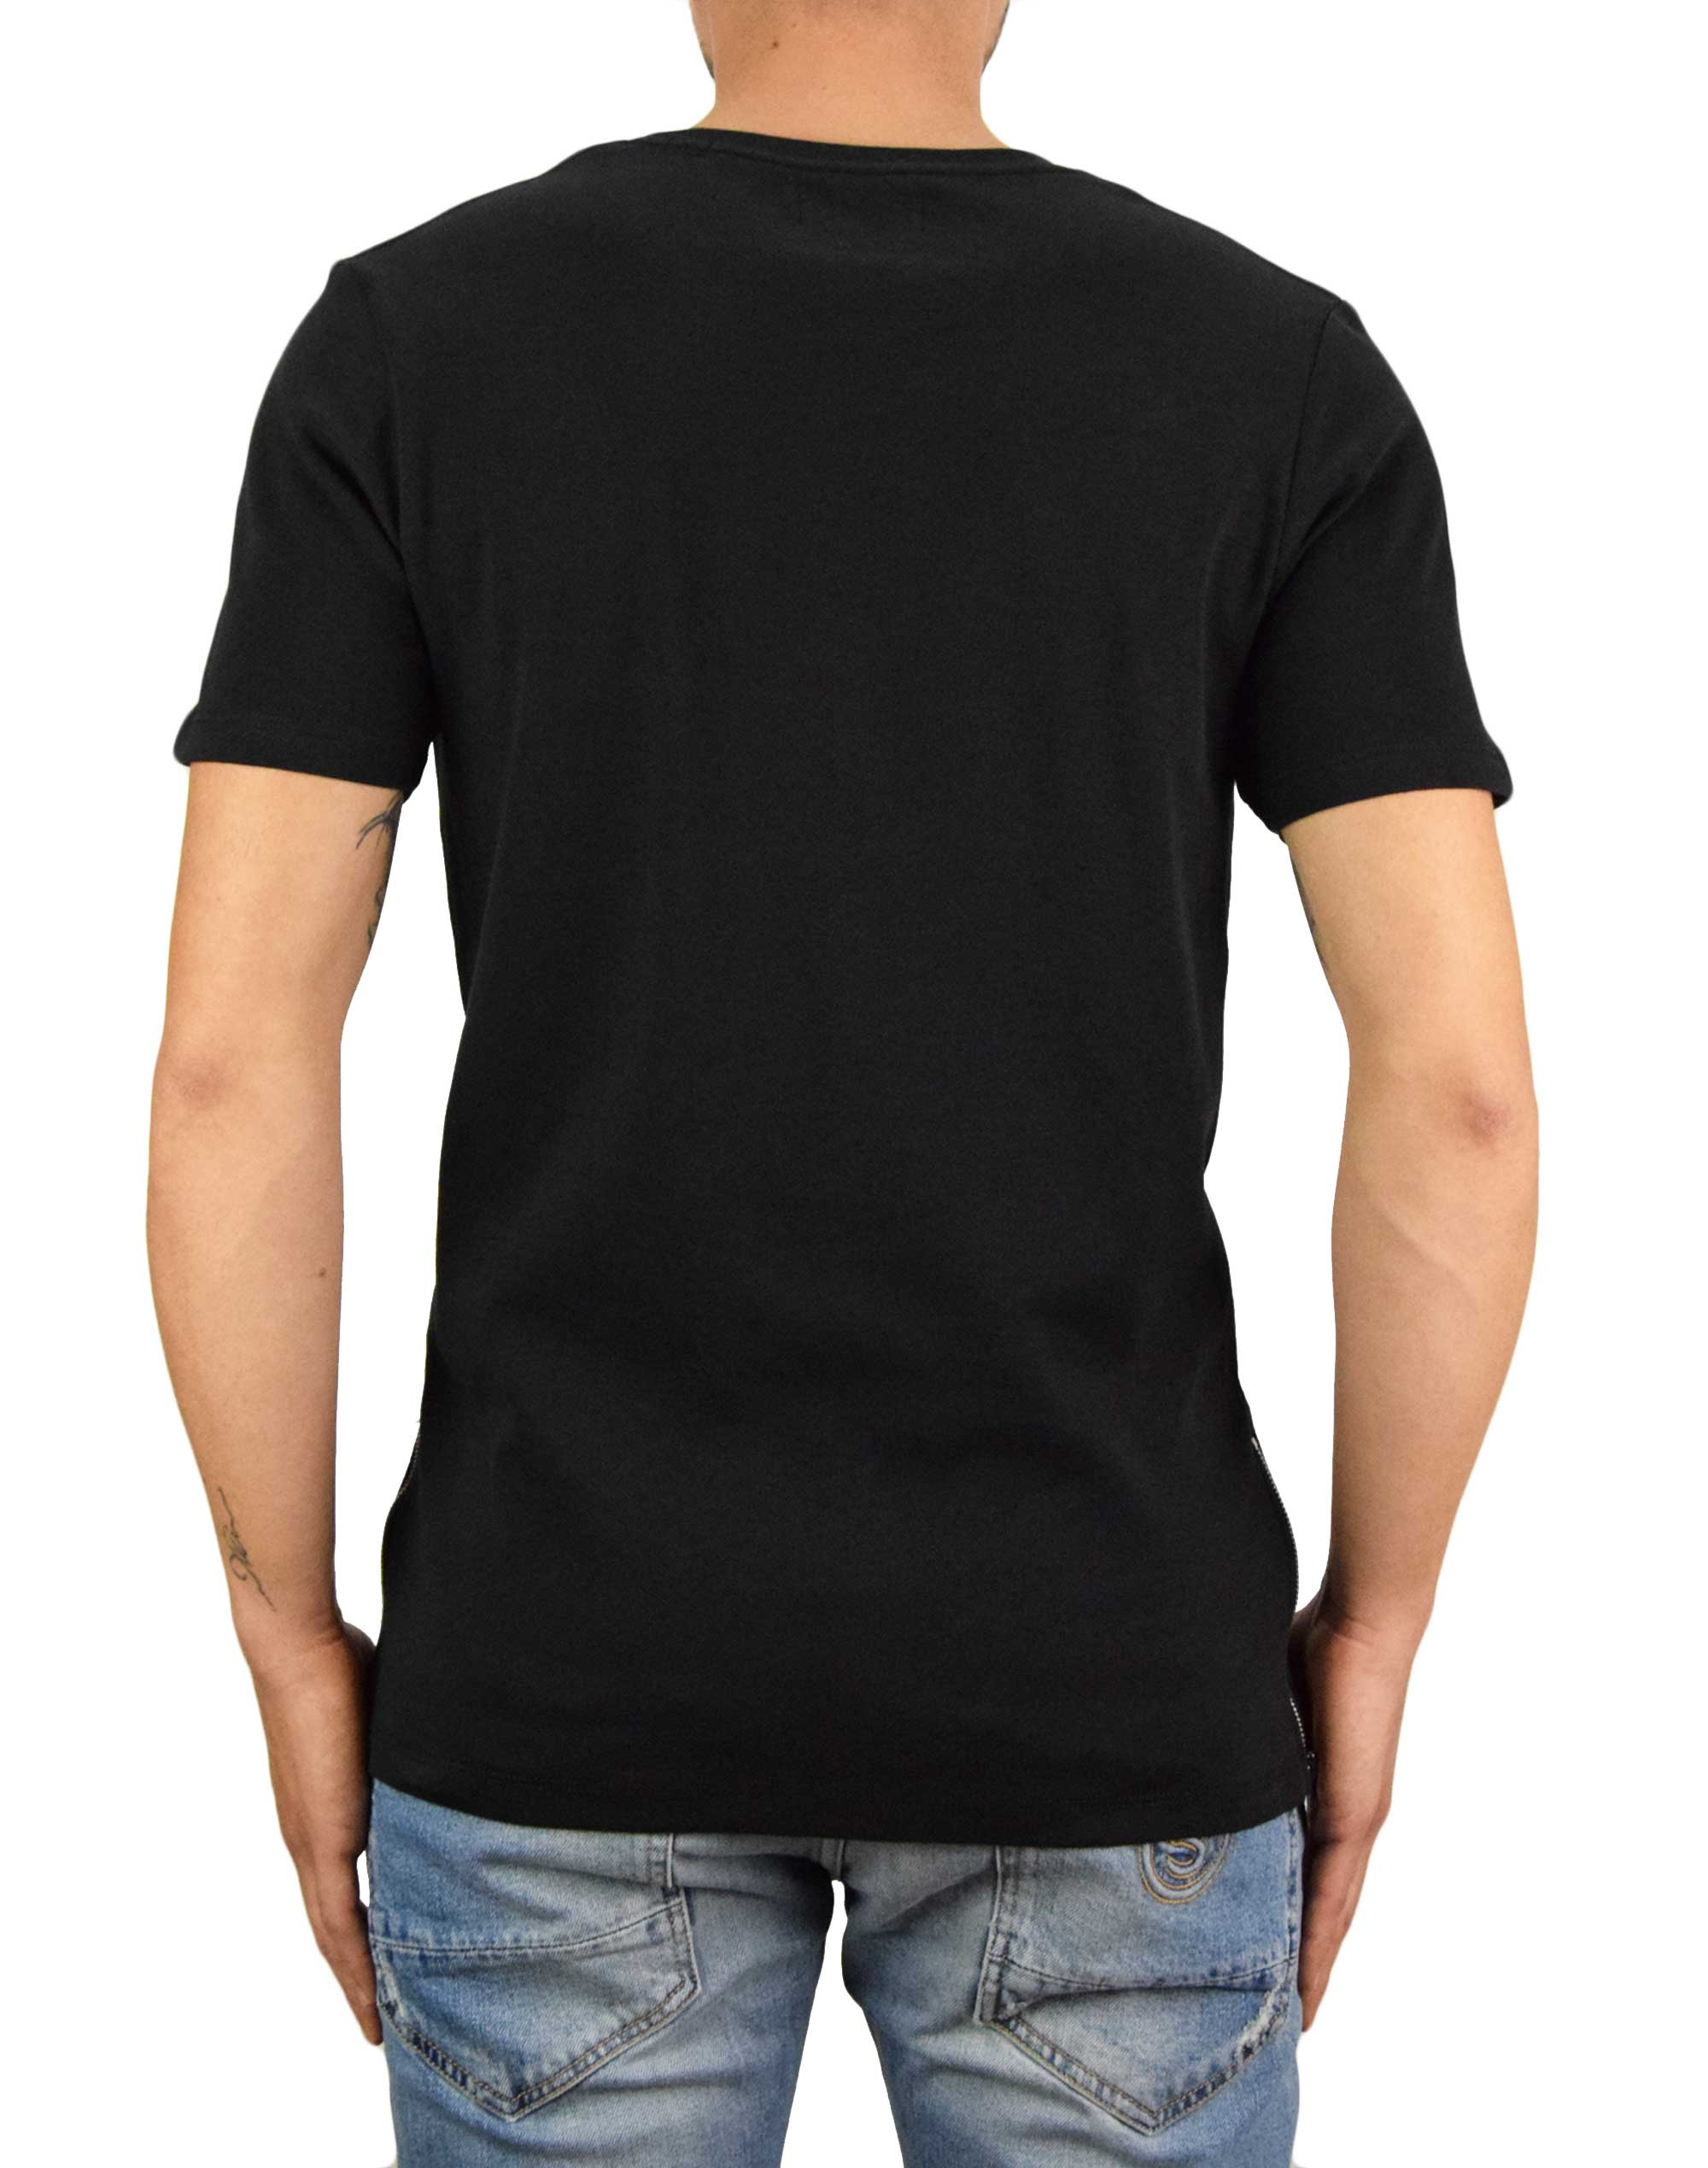 Jack & Jones Zip Tee Slim Fit (12174743) Black